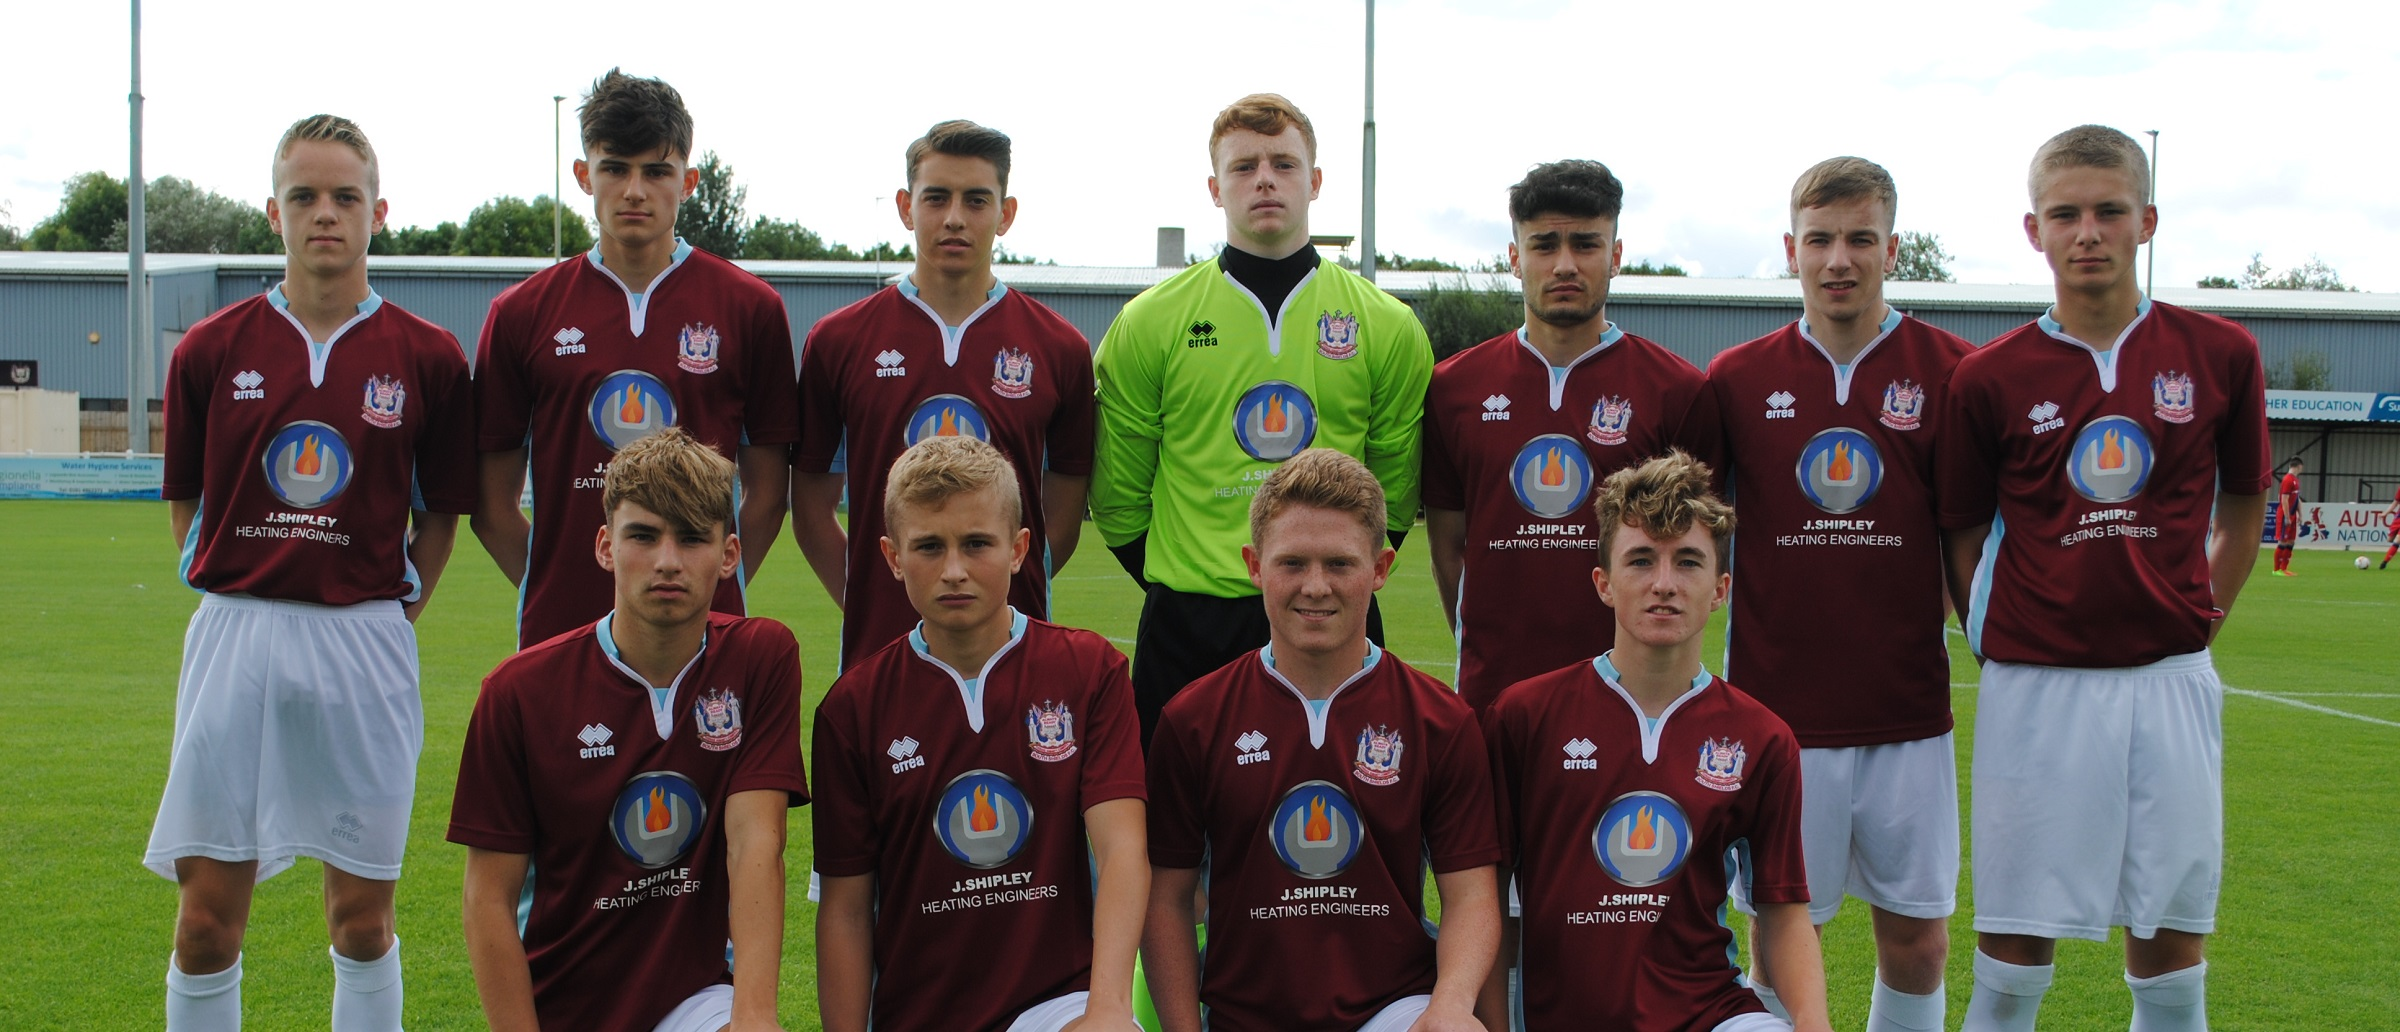 SSFC Academy win again as Lowther brace sees off Maltby Main